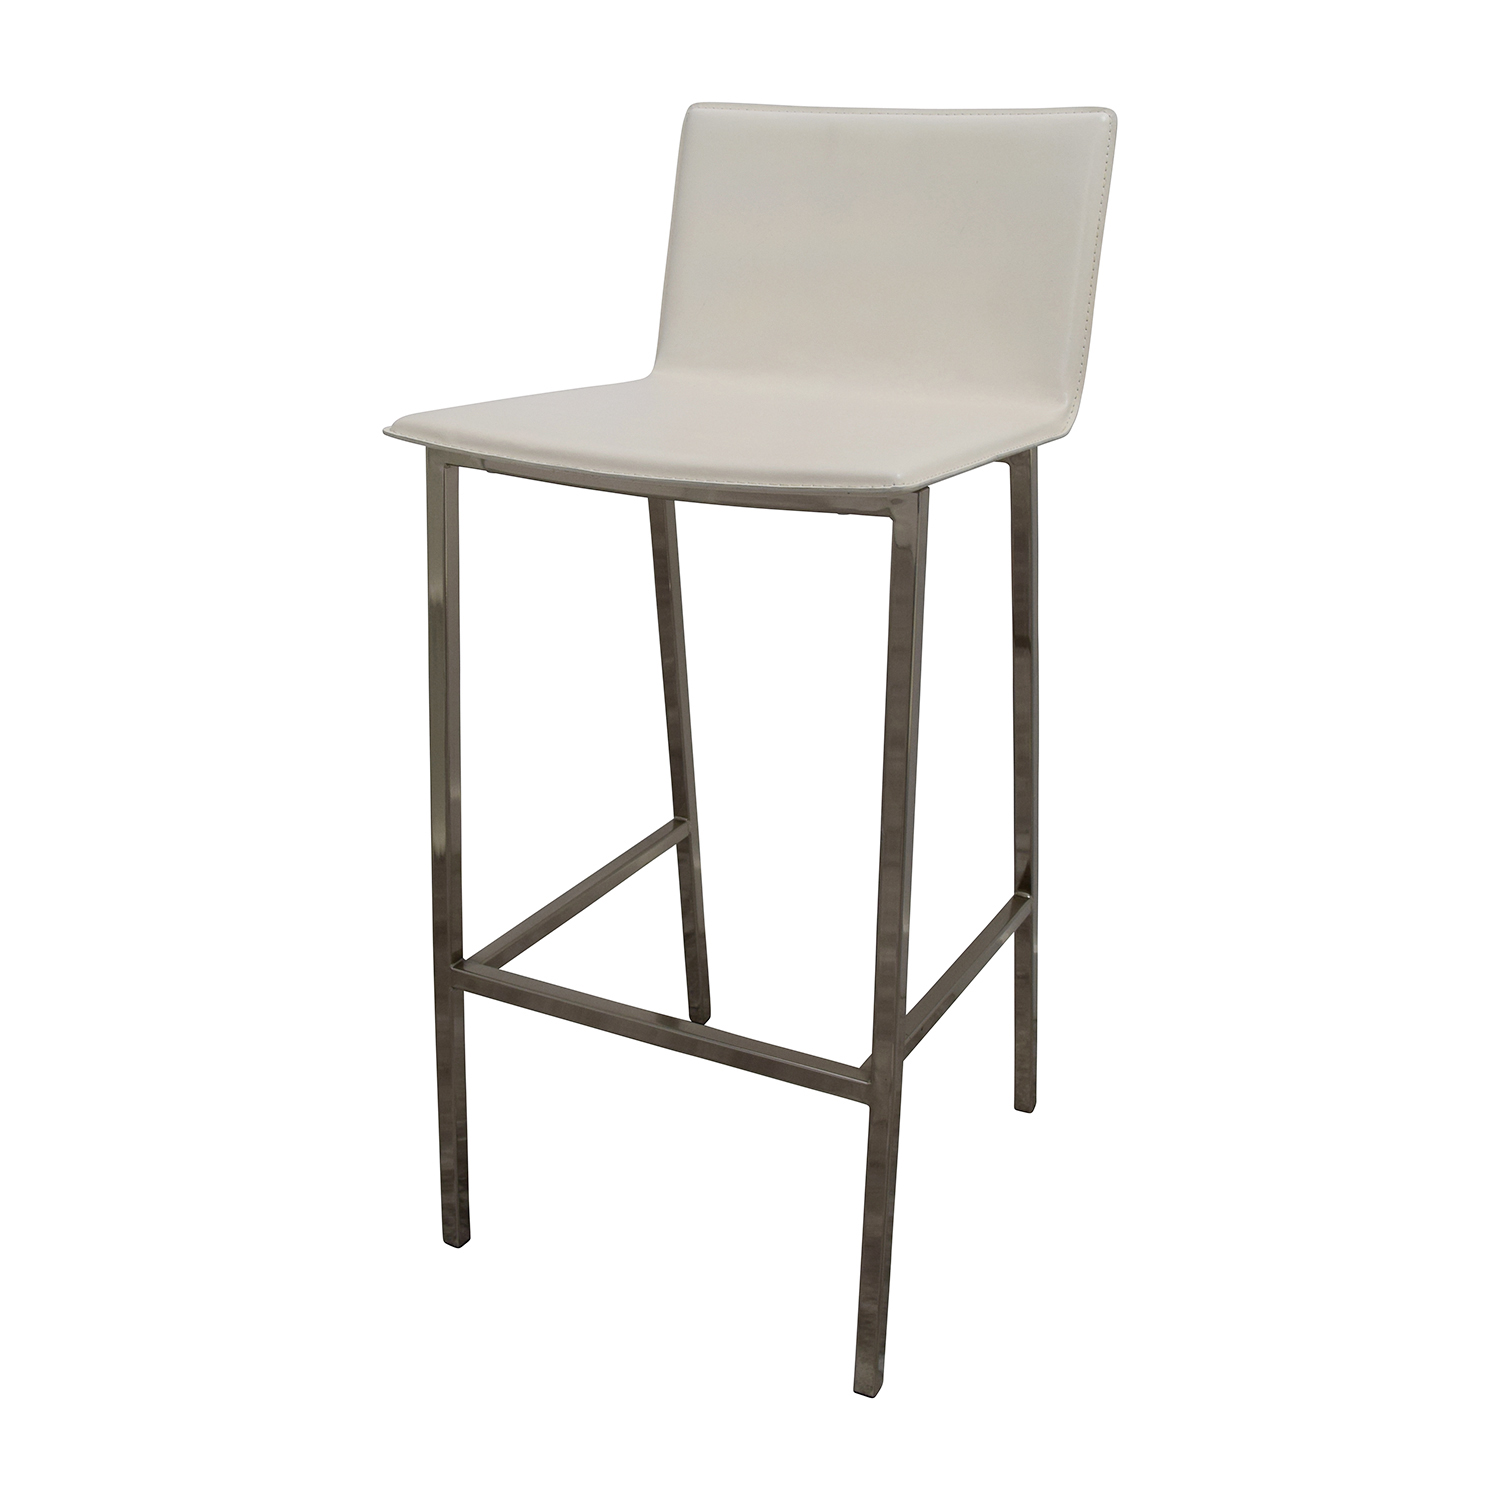 OFF CB2 CB2 Public White High Dining Table with